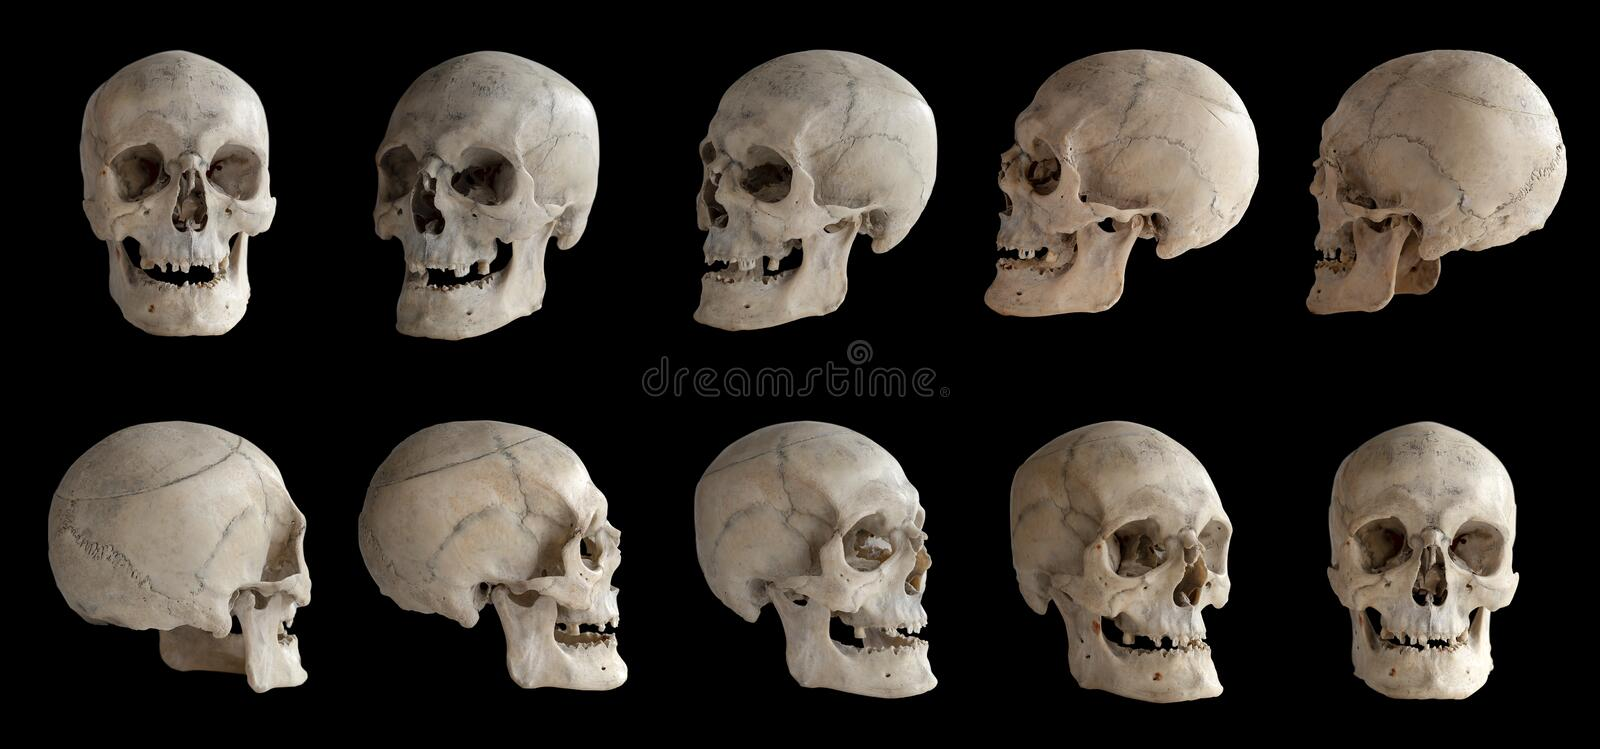 Human anatomy. Human skull. Collection of rotations of the skull. Skull at different angles. I royalty free stock images